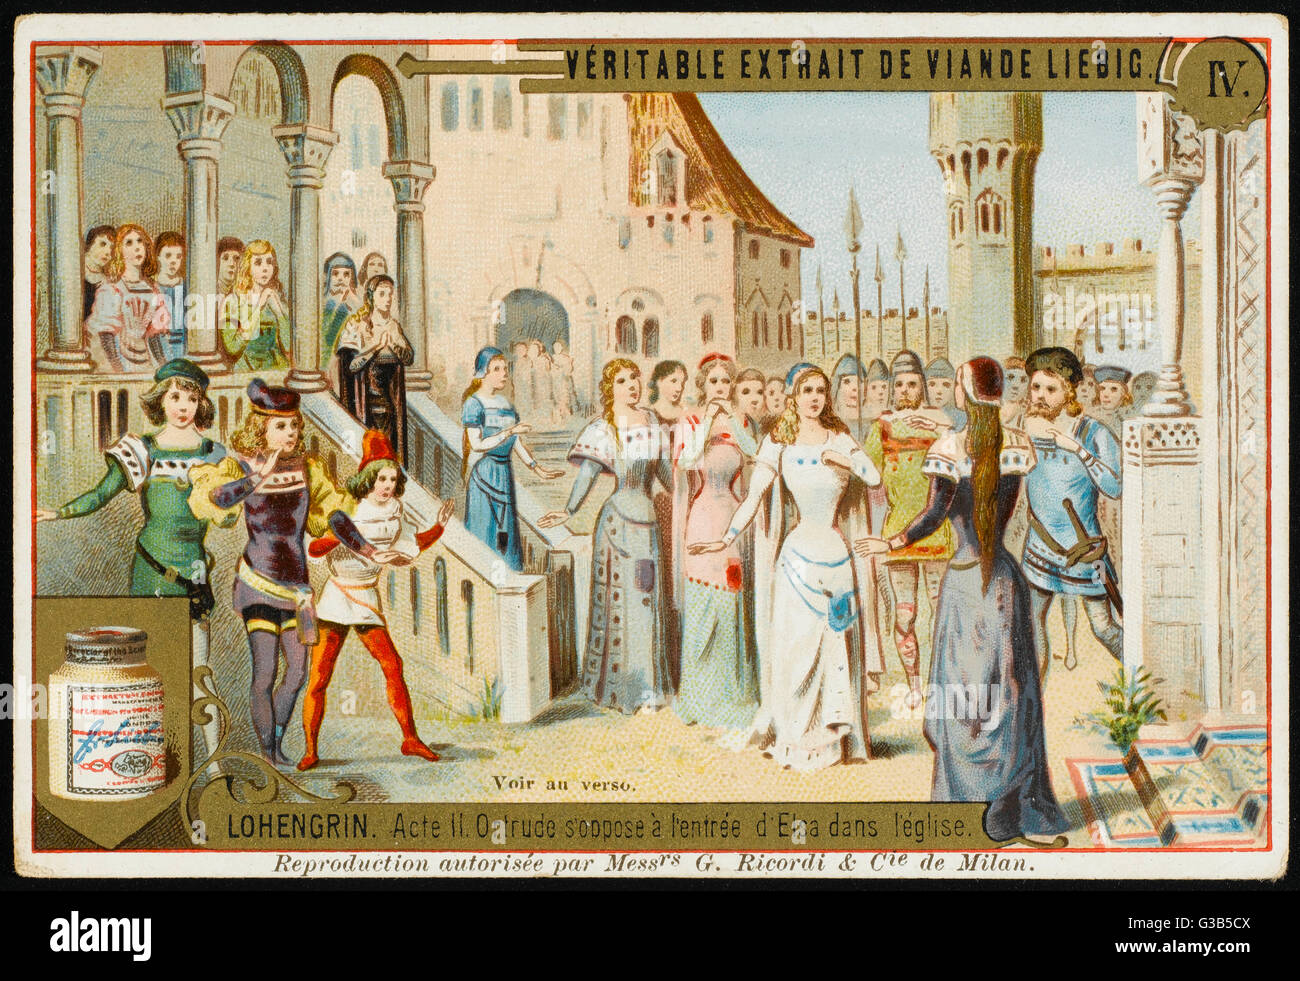 Ortrud denies Elsa entrance  to the church         Date: first performed 1850 - Stock Image